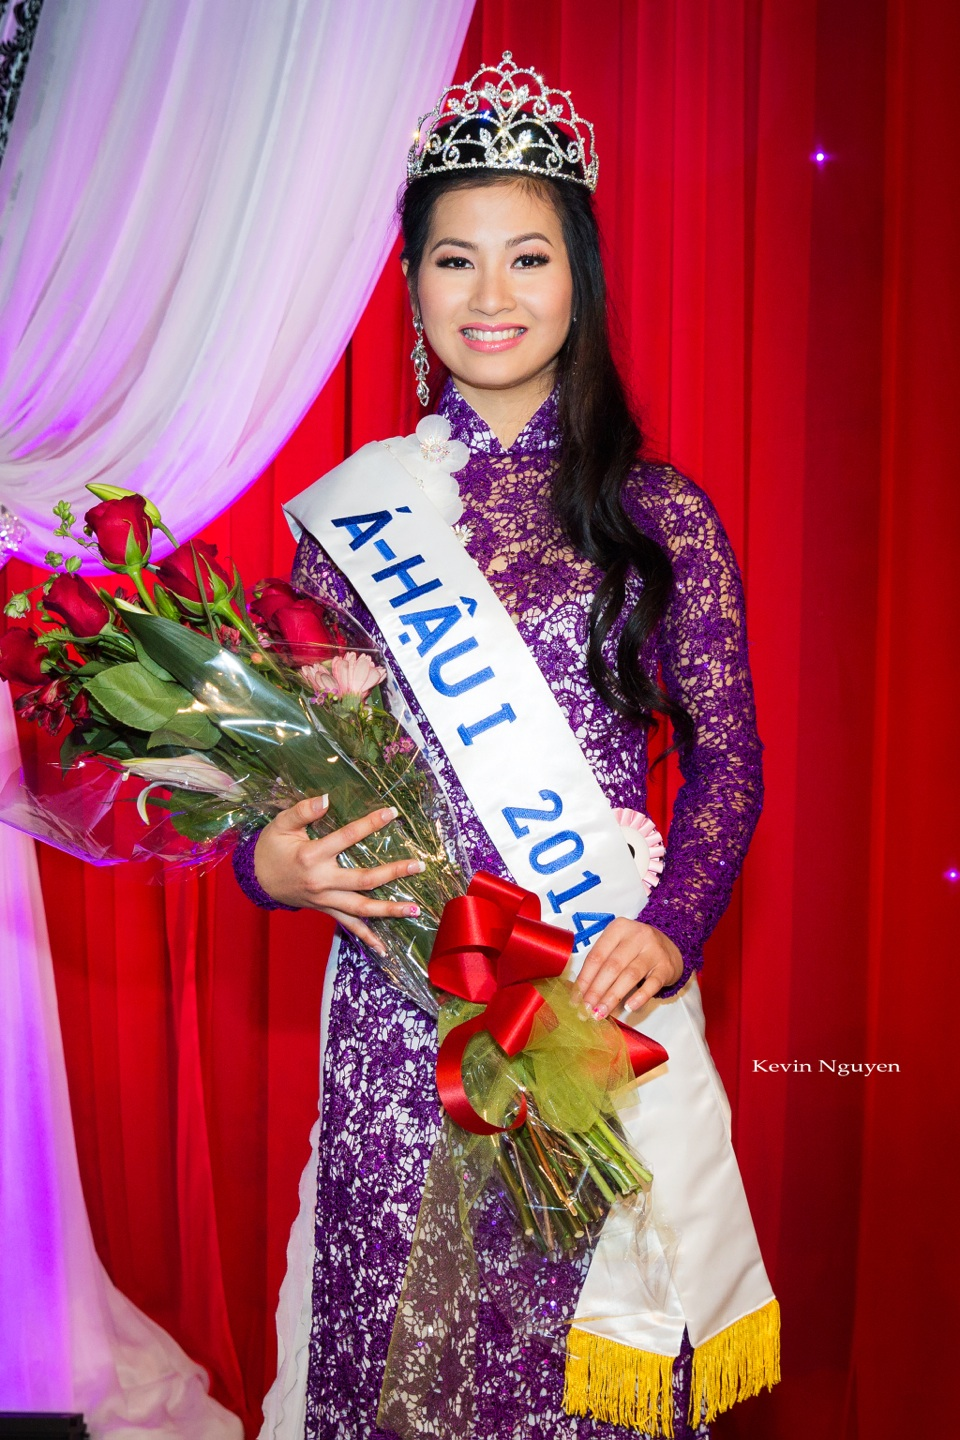 Pageant Day 2014 - Miss Vietnam of Northern California - San Jose, CA - Image 855